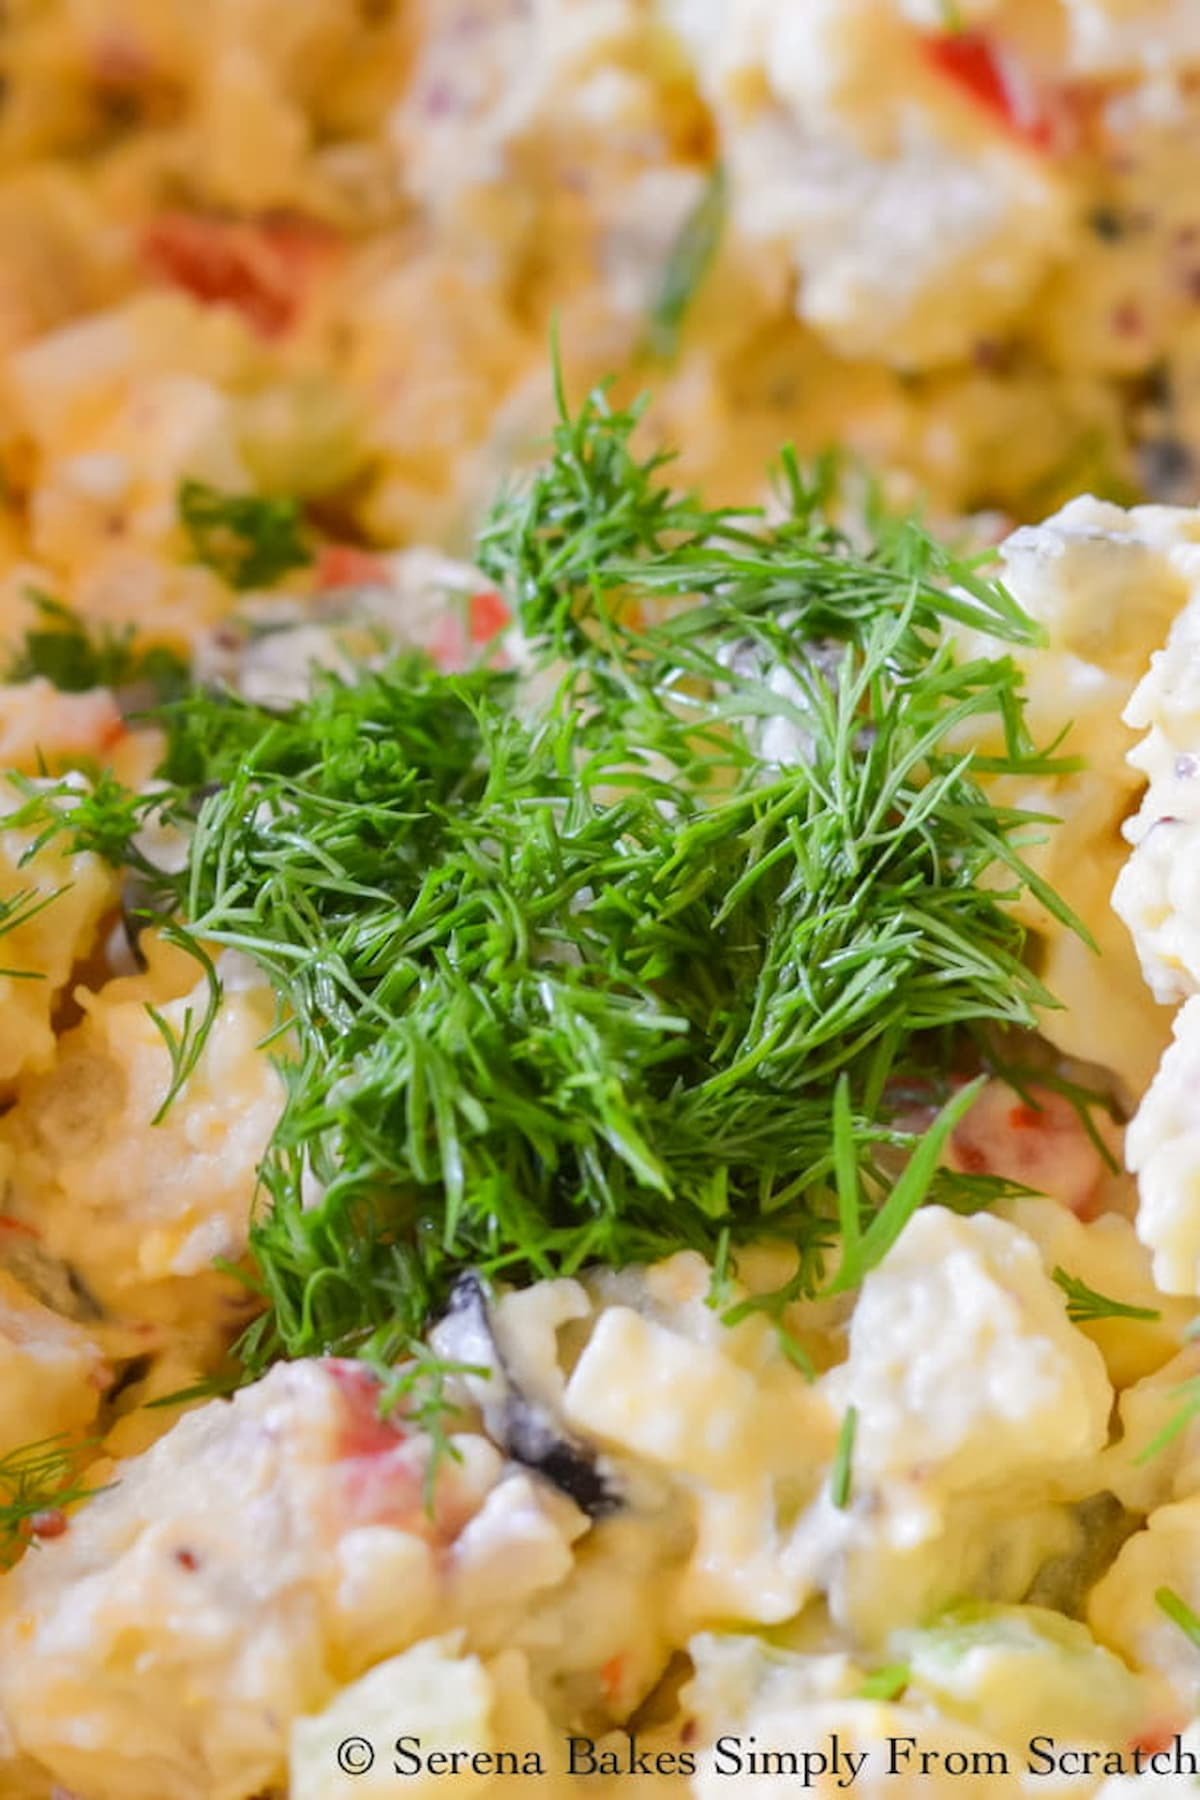 Fresh Chopped Dill added to Potato Salad with Olives in a large bowl.